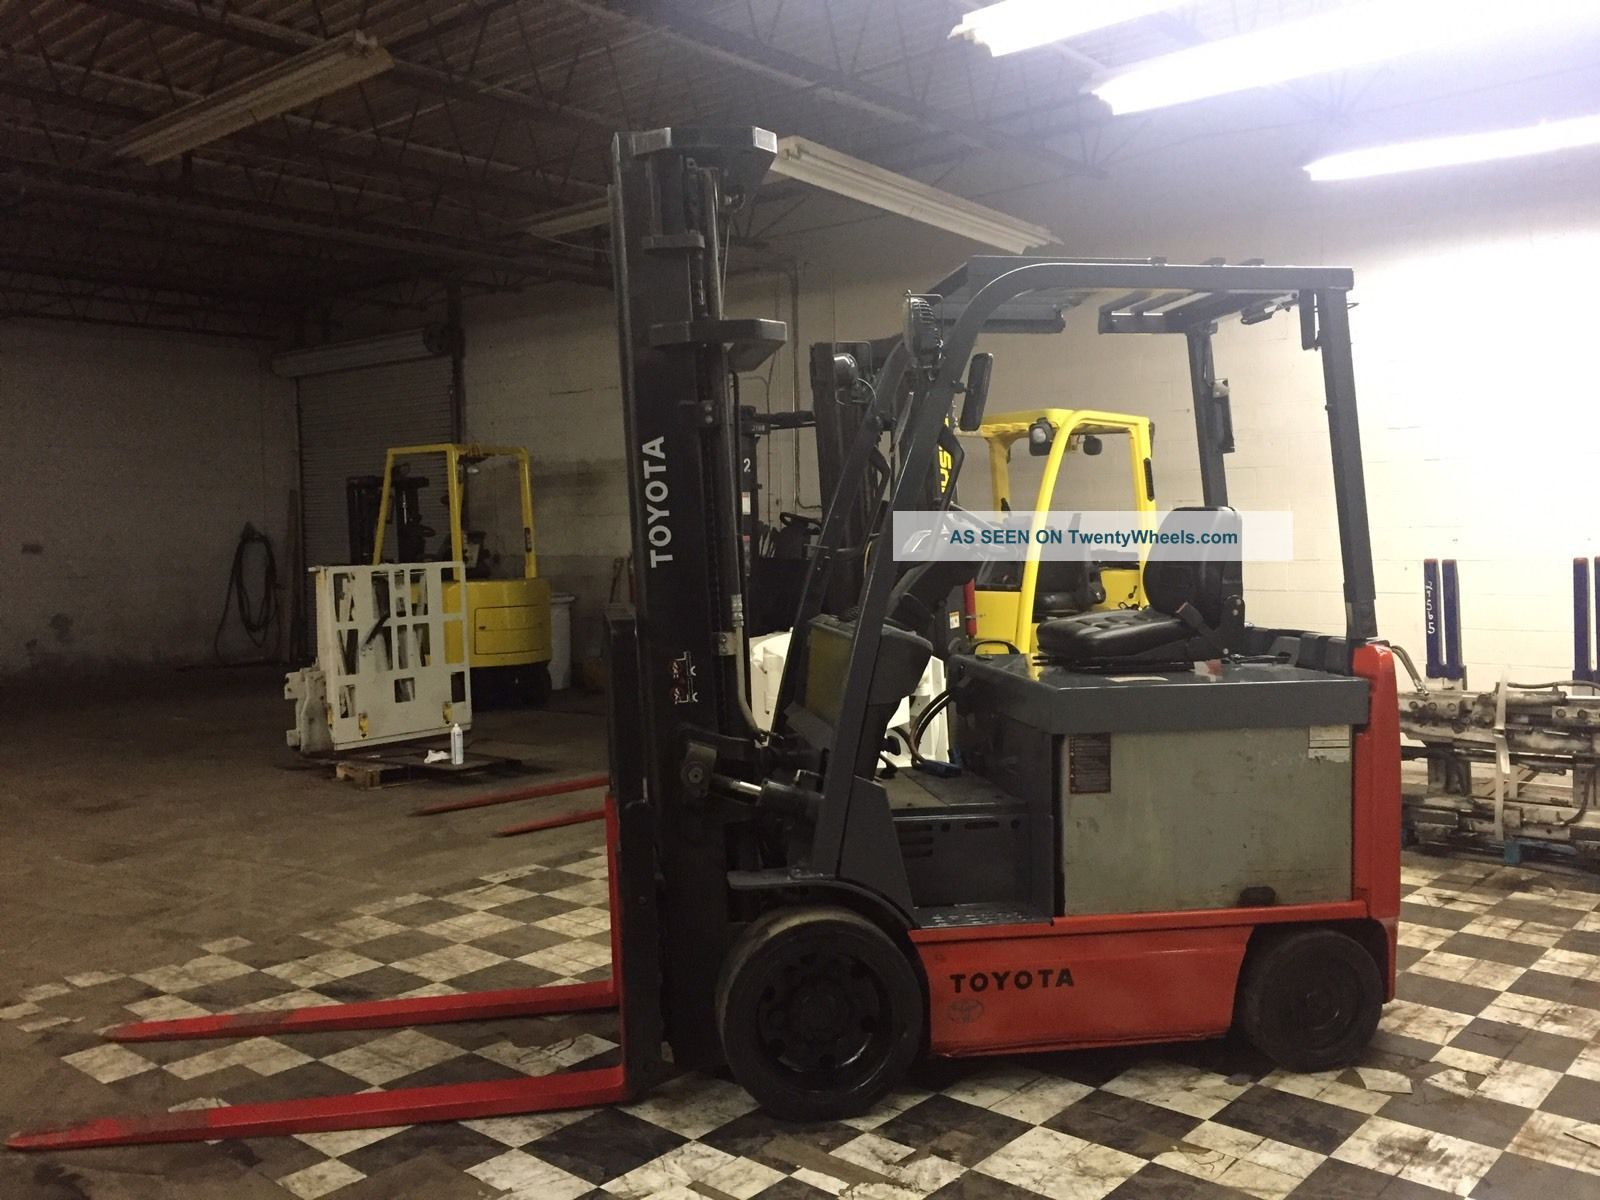 2010 Toyota 6000 Pound Electric Forklift Side Shift And Fork Positioner 4 Ways Forklifts photo